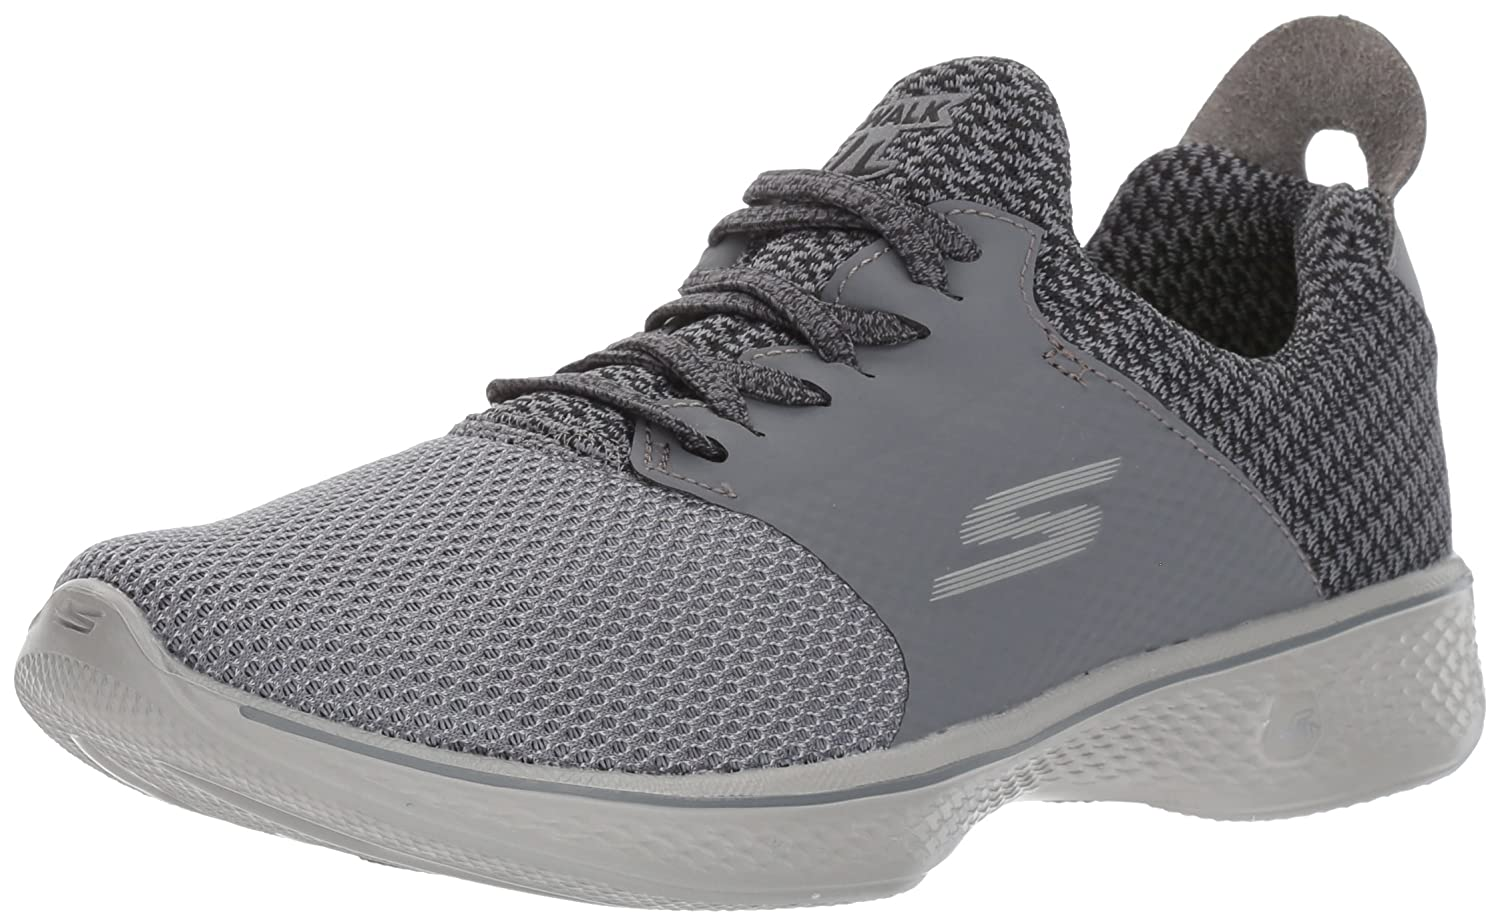 Skechers Performance Women's Go Walk 4 Sustain B06WW8RTHP 8 B(M) US|Charcoal